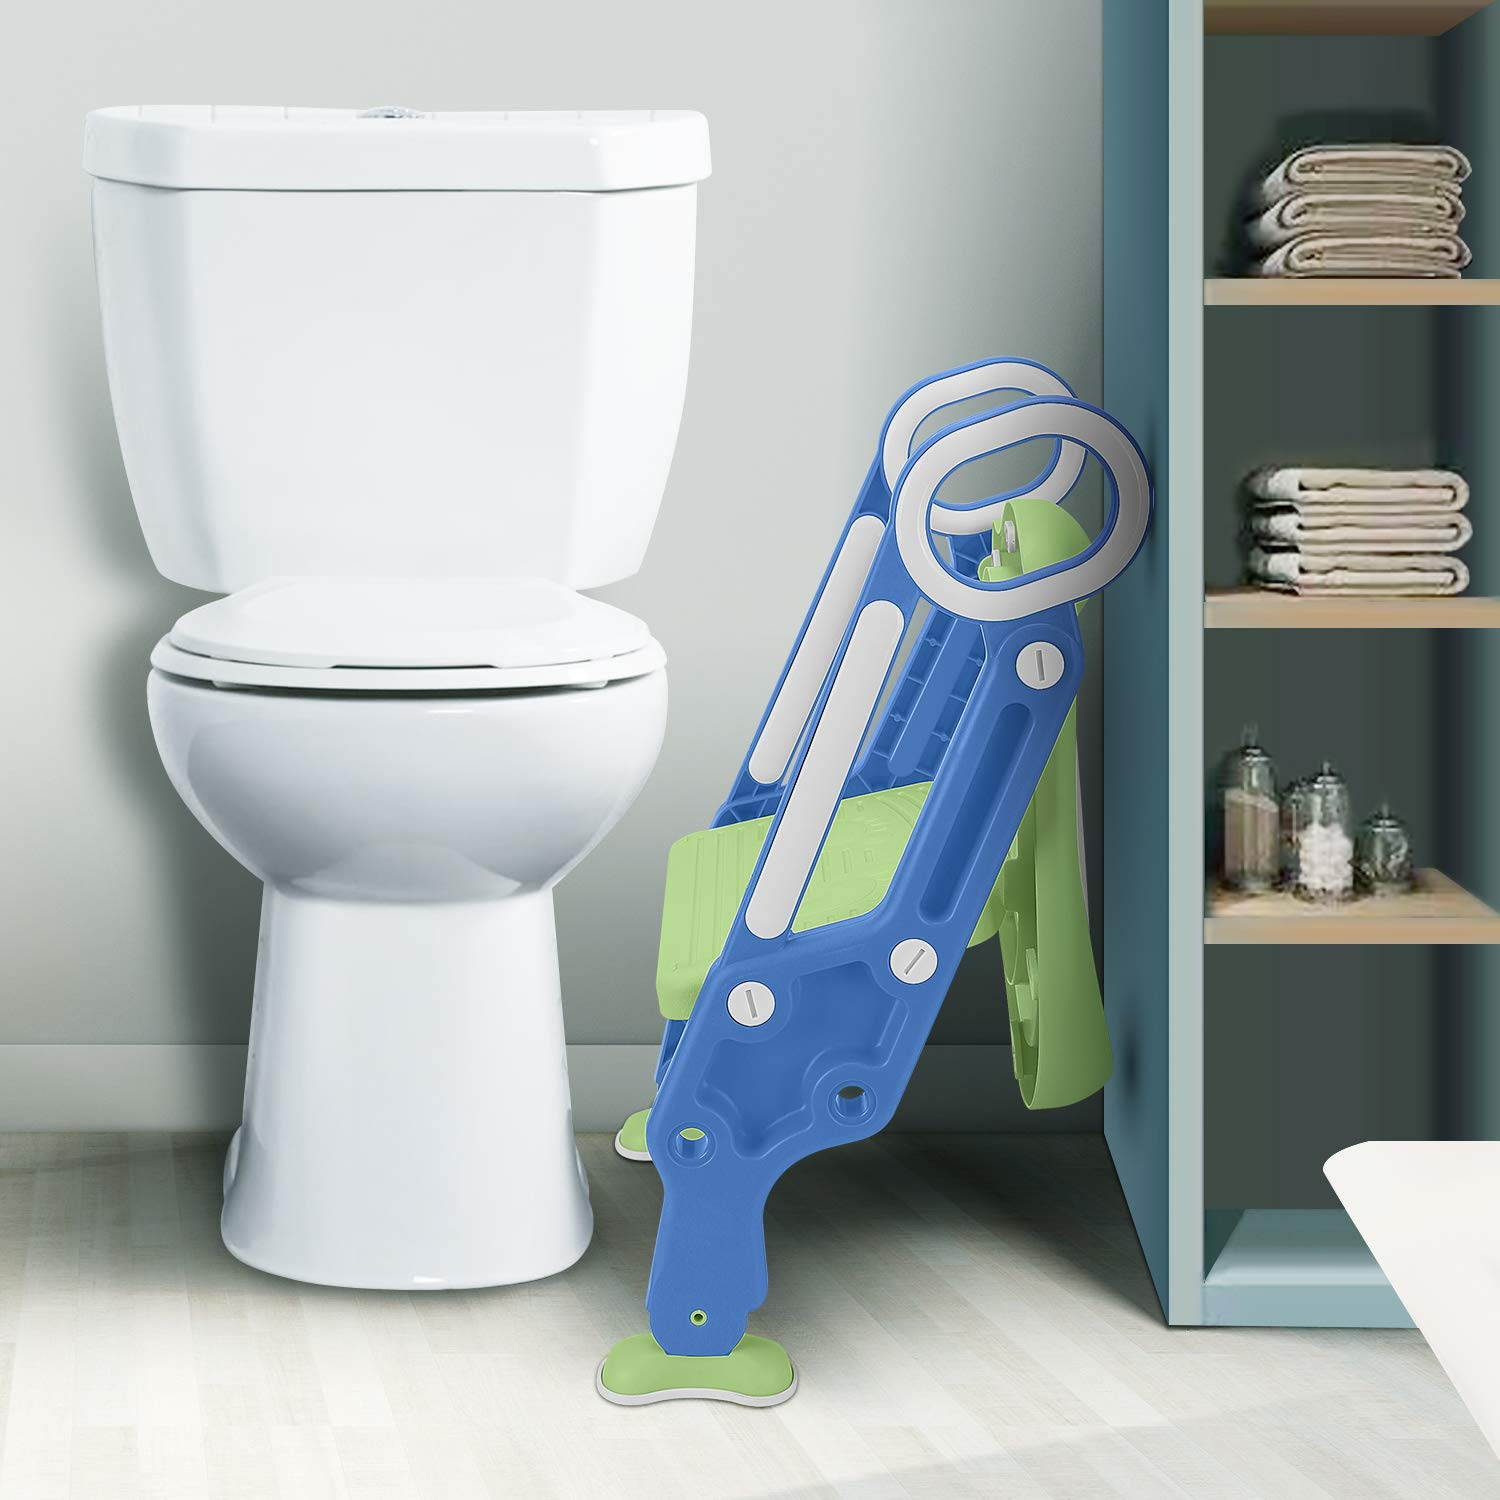 Potty Training Seat with Step Stool Ladder SunBorder Chair for Kids Baby and Toddler Toilet Training with Handles Padded Seat Wide Step Non-Slip Blue Green Blue+Purple +PU Cushion